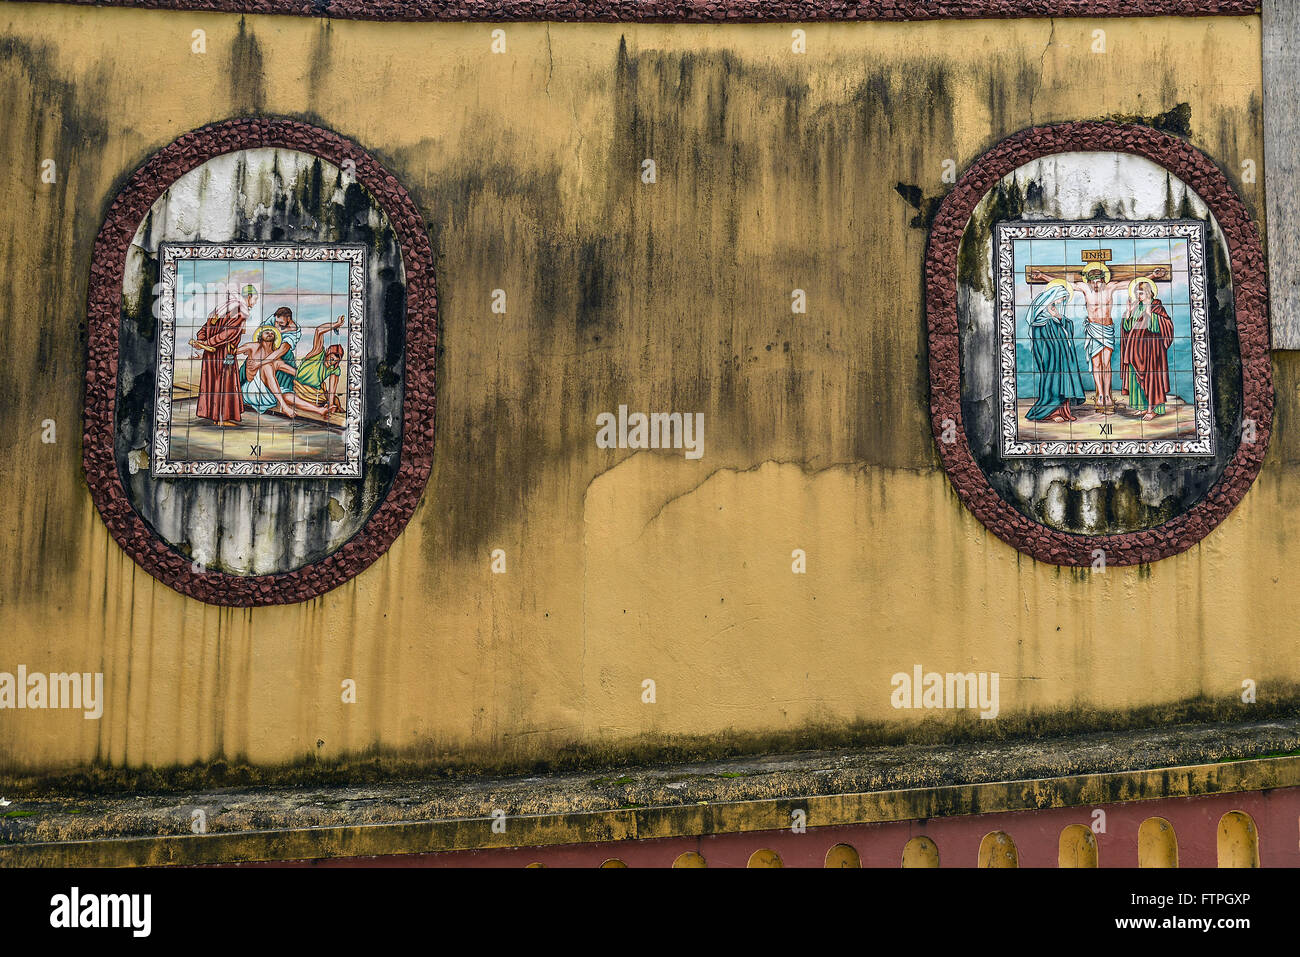 Wall tile depicting the Stations of the Cross in Church of Our Lady of Conceicao - Stock Image